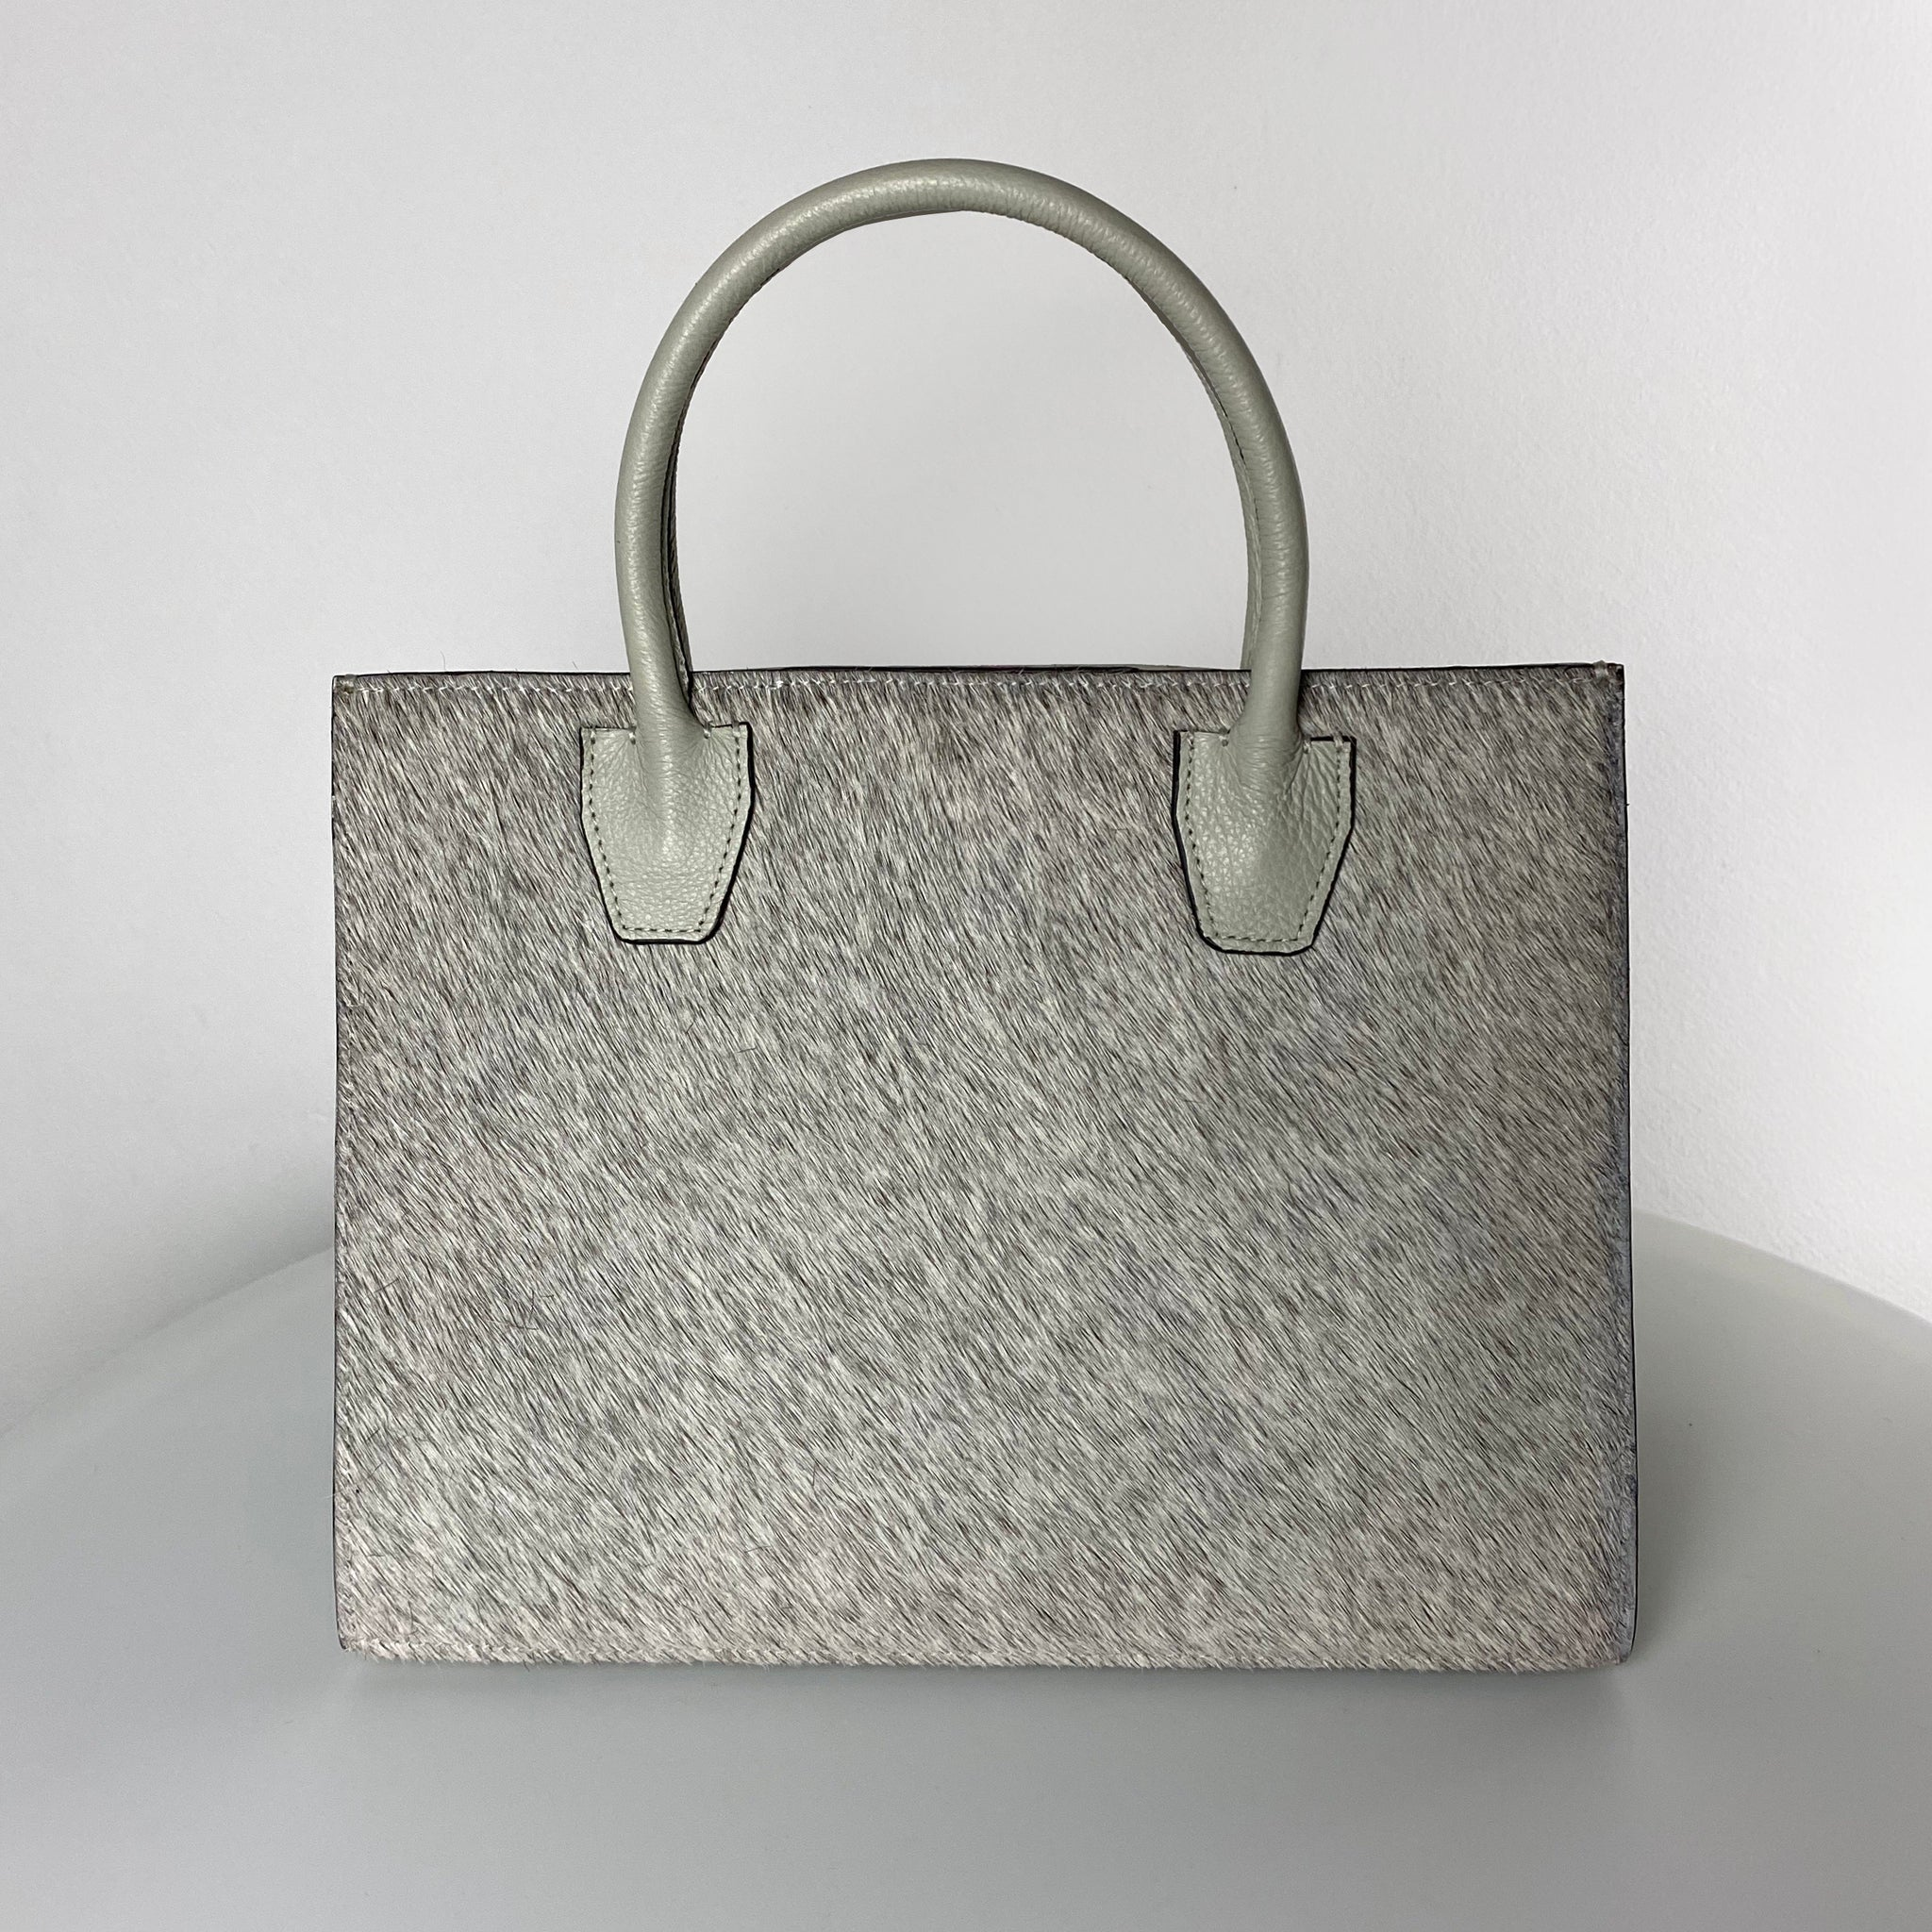 ANGELA STRUCTURED TOTE, GREY & NATURAL CALF HAIR